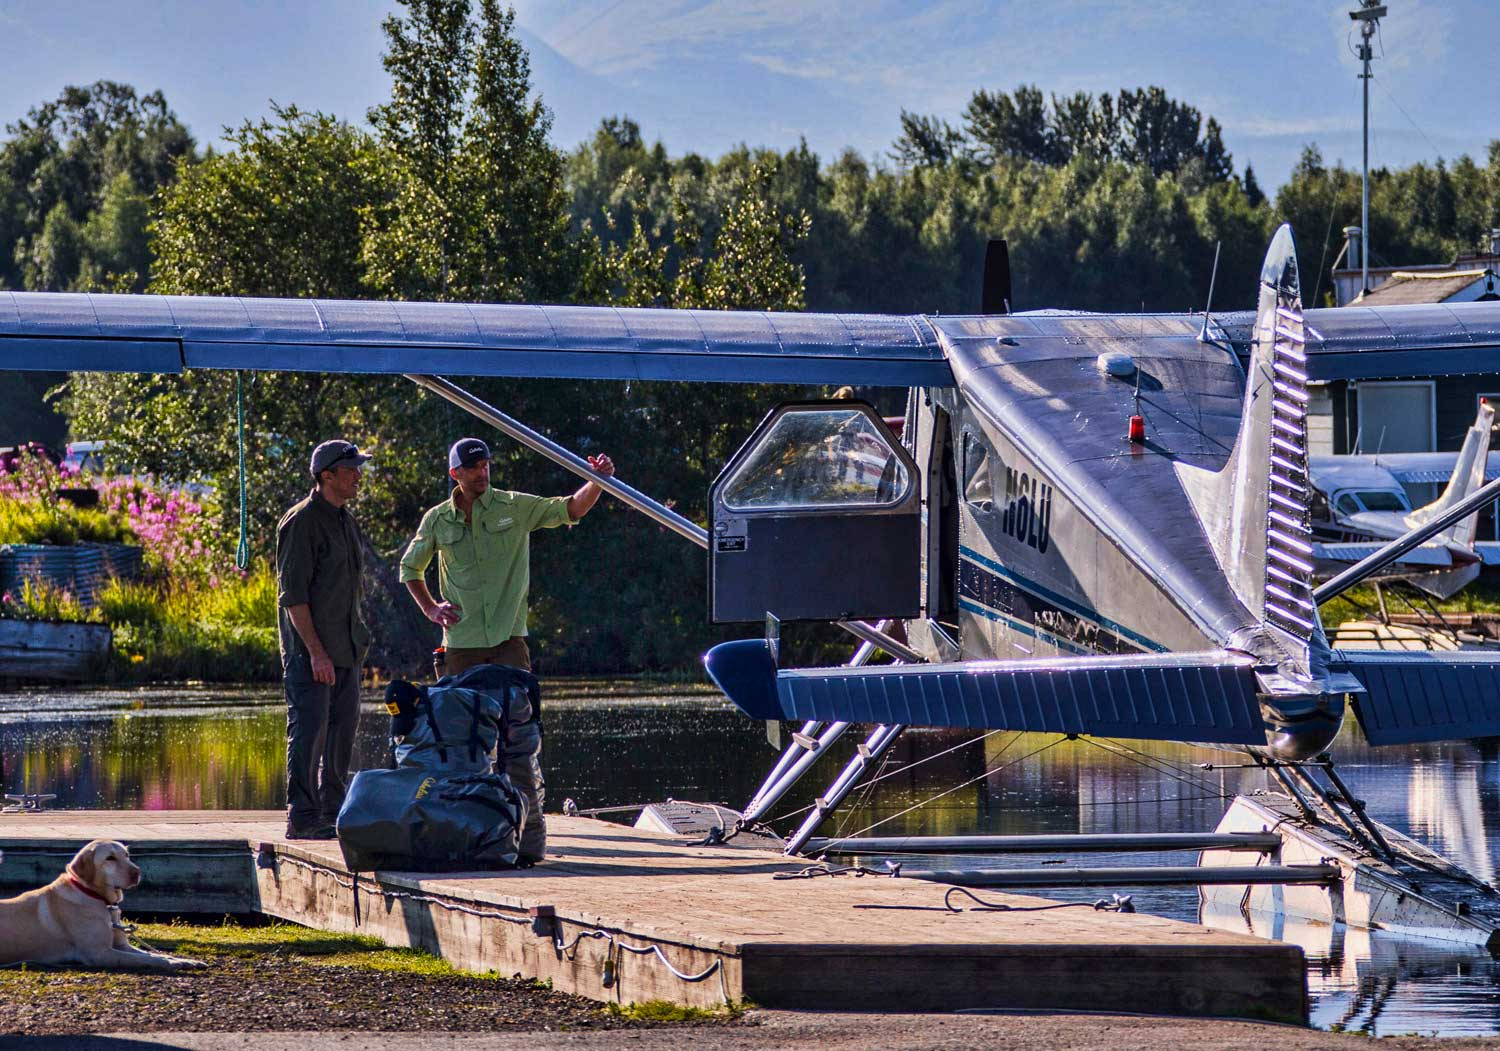 men-boardng-pontoon-plane-on-lake